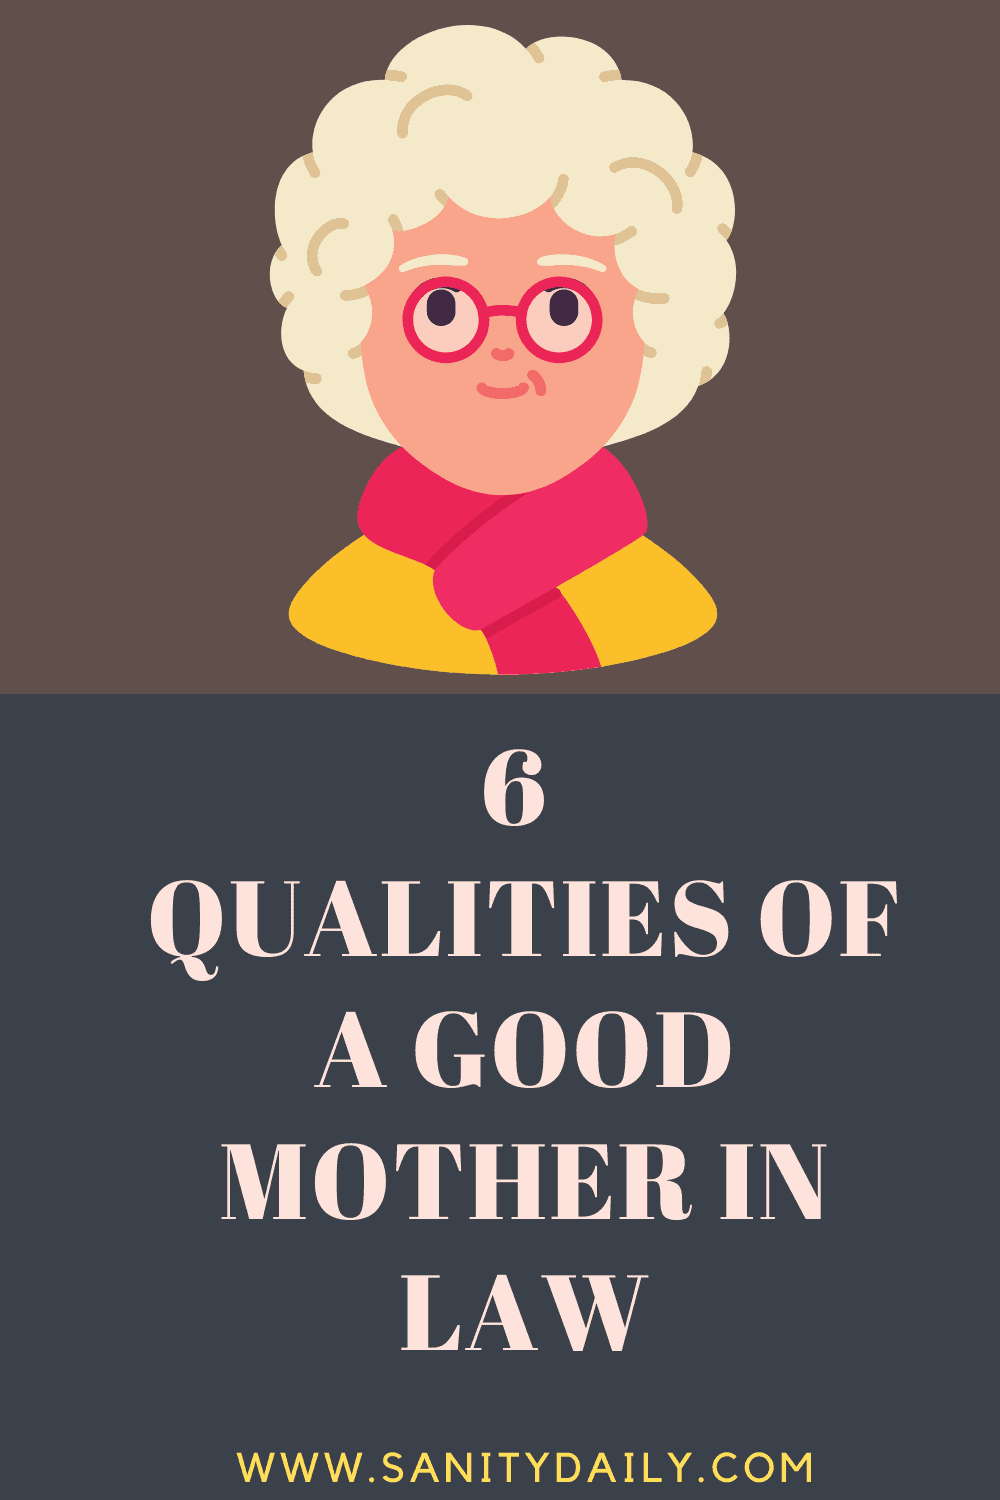 Qualities of a good mother in law